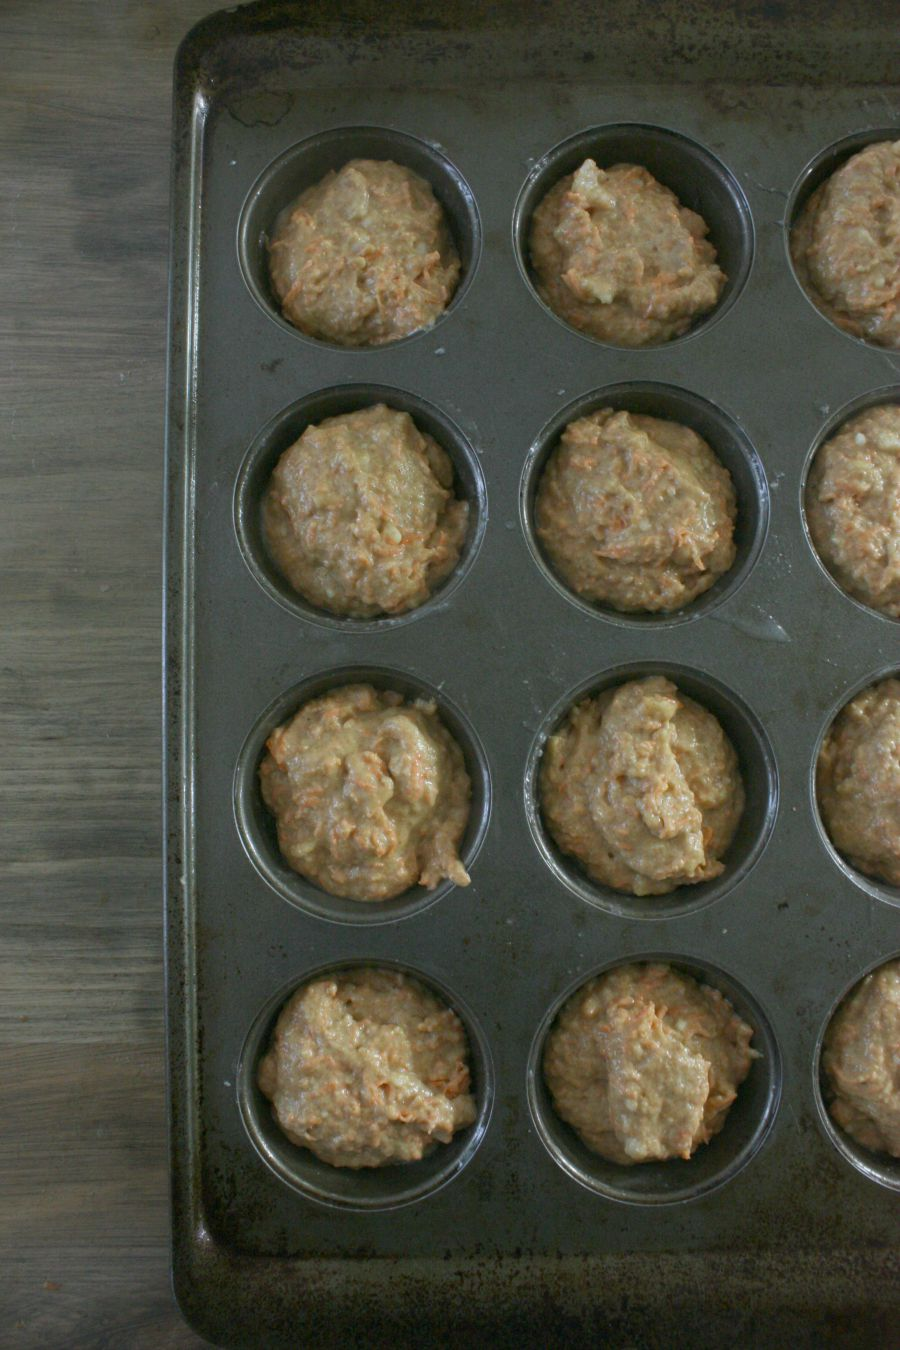 Carrot And Sage Muffins (With Maple Syrup Drizzle) | Growing Up Herbal | These sweet and savory muffins are a great start to your day when paired with some homemade yogurt and raw milk! Yum!